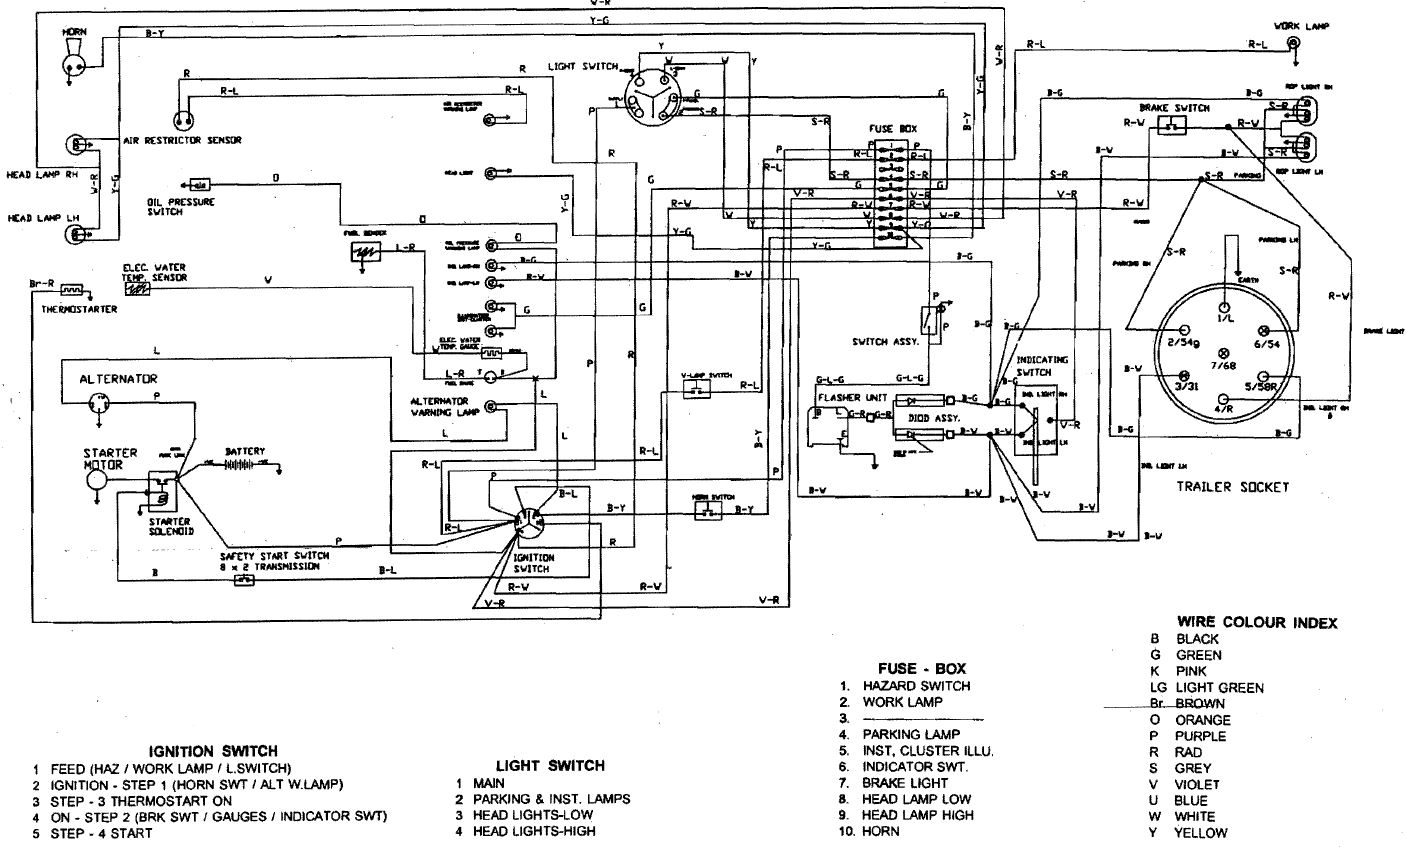 20158463319_b82d524c3d_o ignition switch wiring diagram john deere ignition switch wiring diagram at creativeand.co